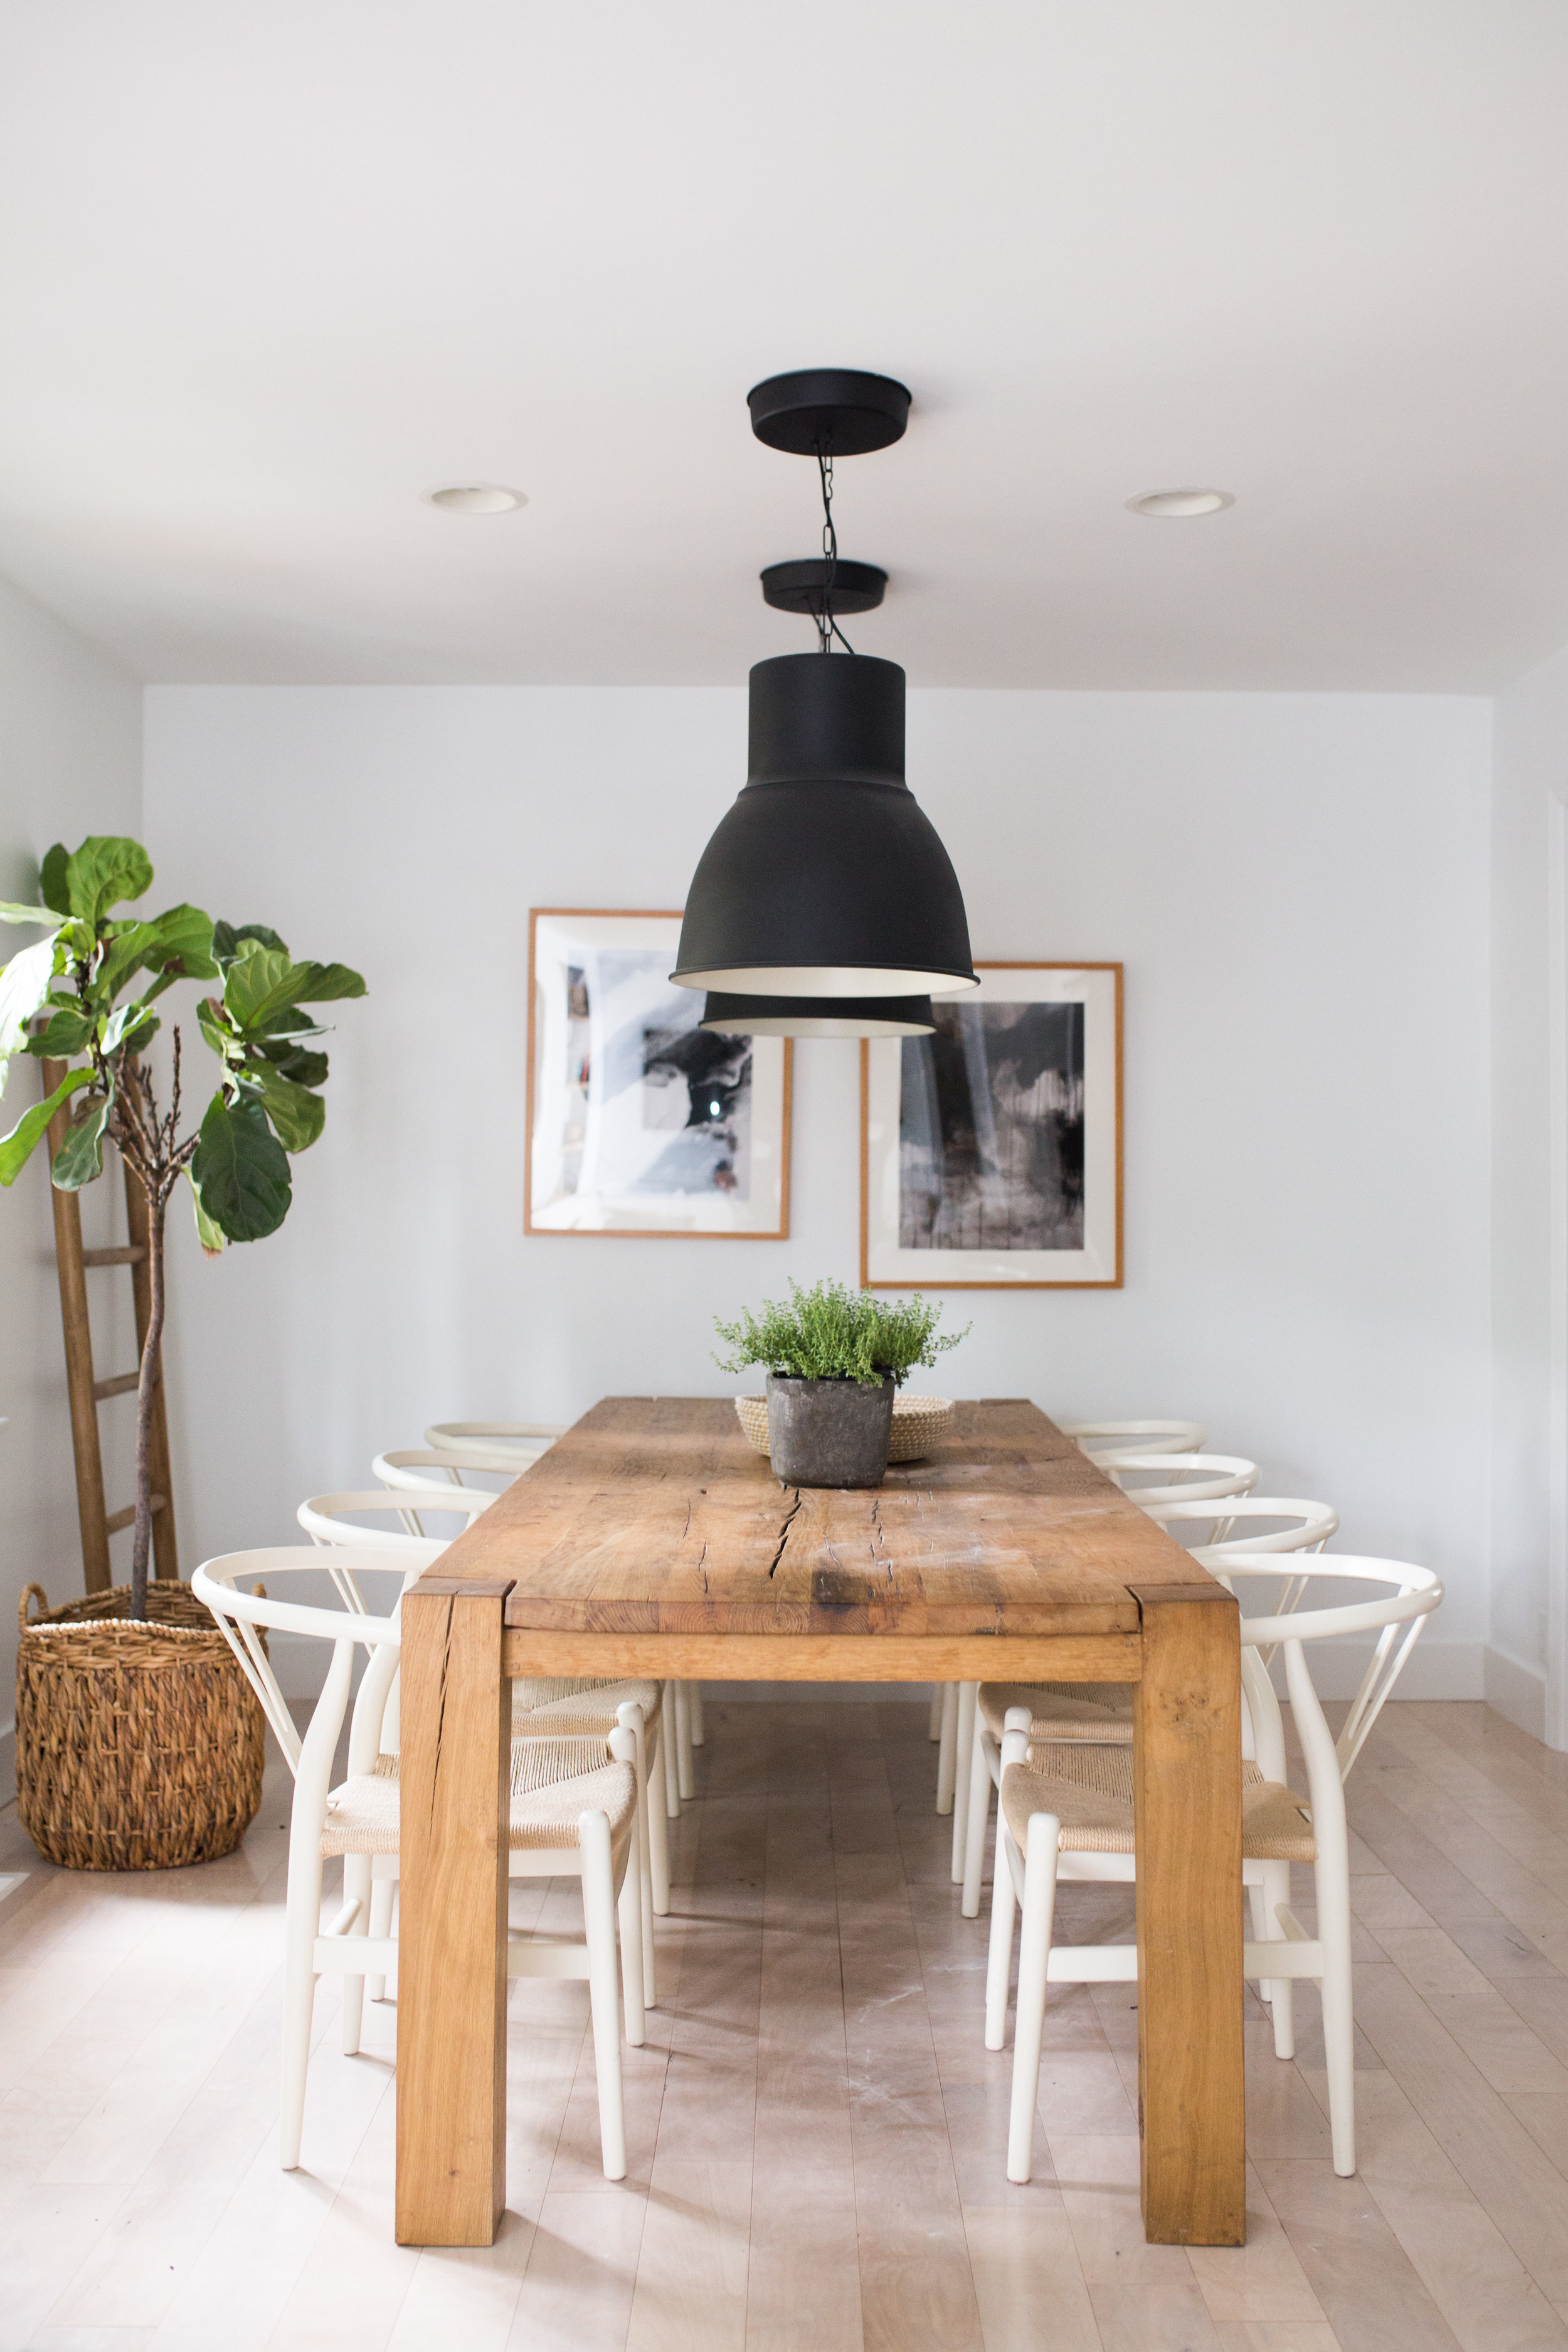 LisaDiederichPhotography_HouseSevenDesign_ApartmentTherapy_Blog-19.jpg